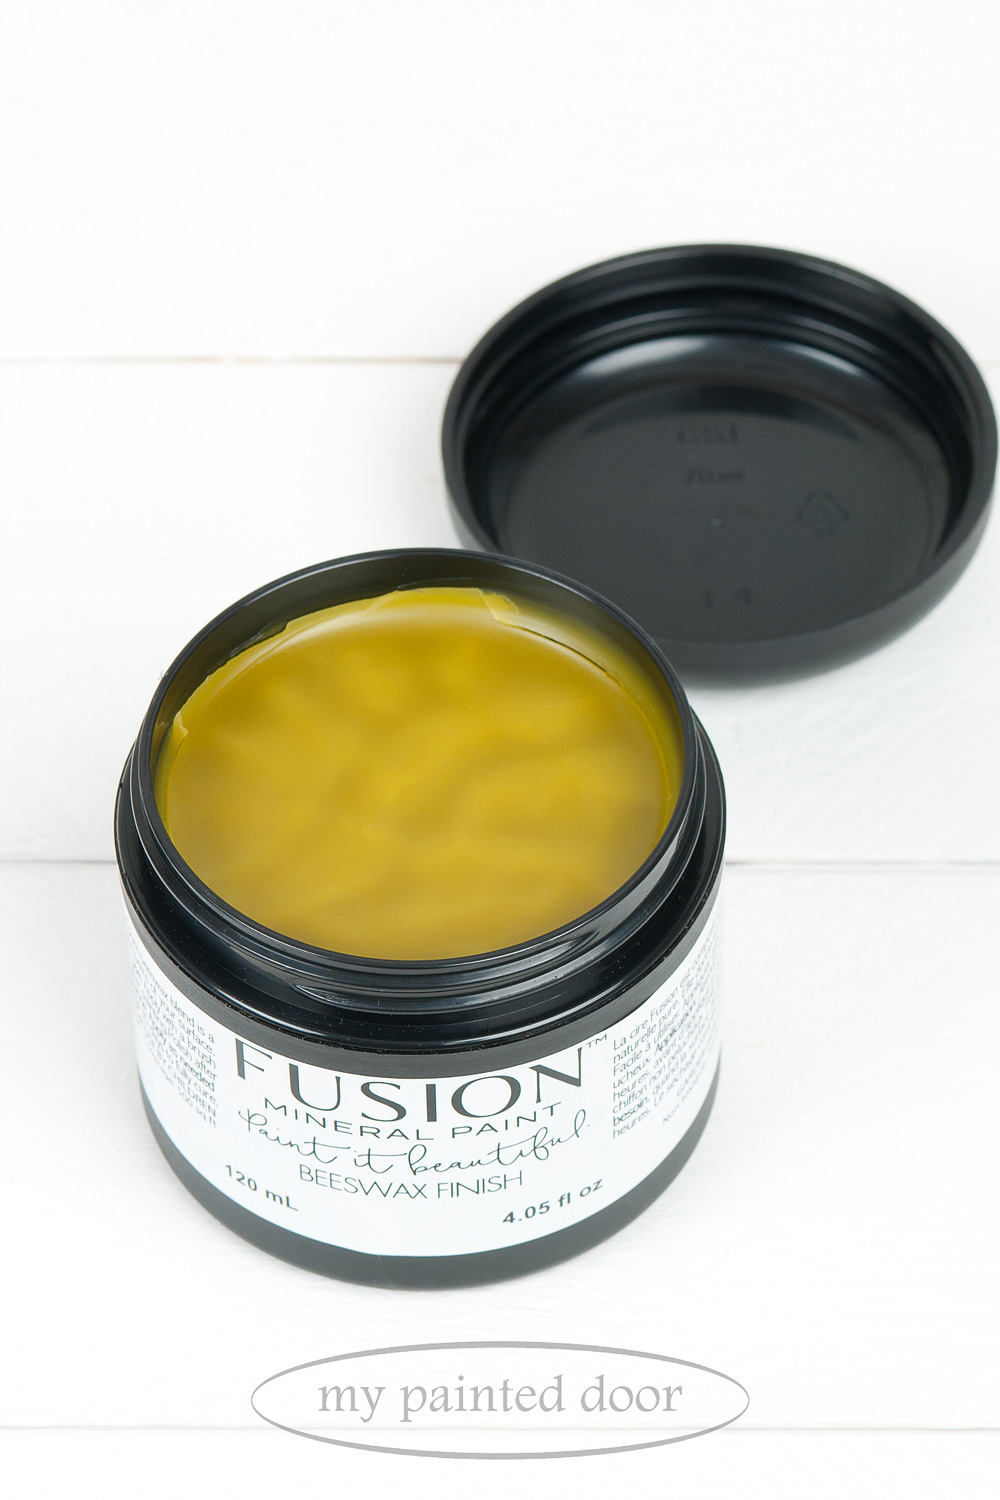 Fusion Beeswax Finish with hemp oil available at My Painted Door